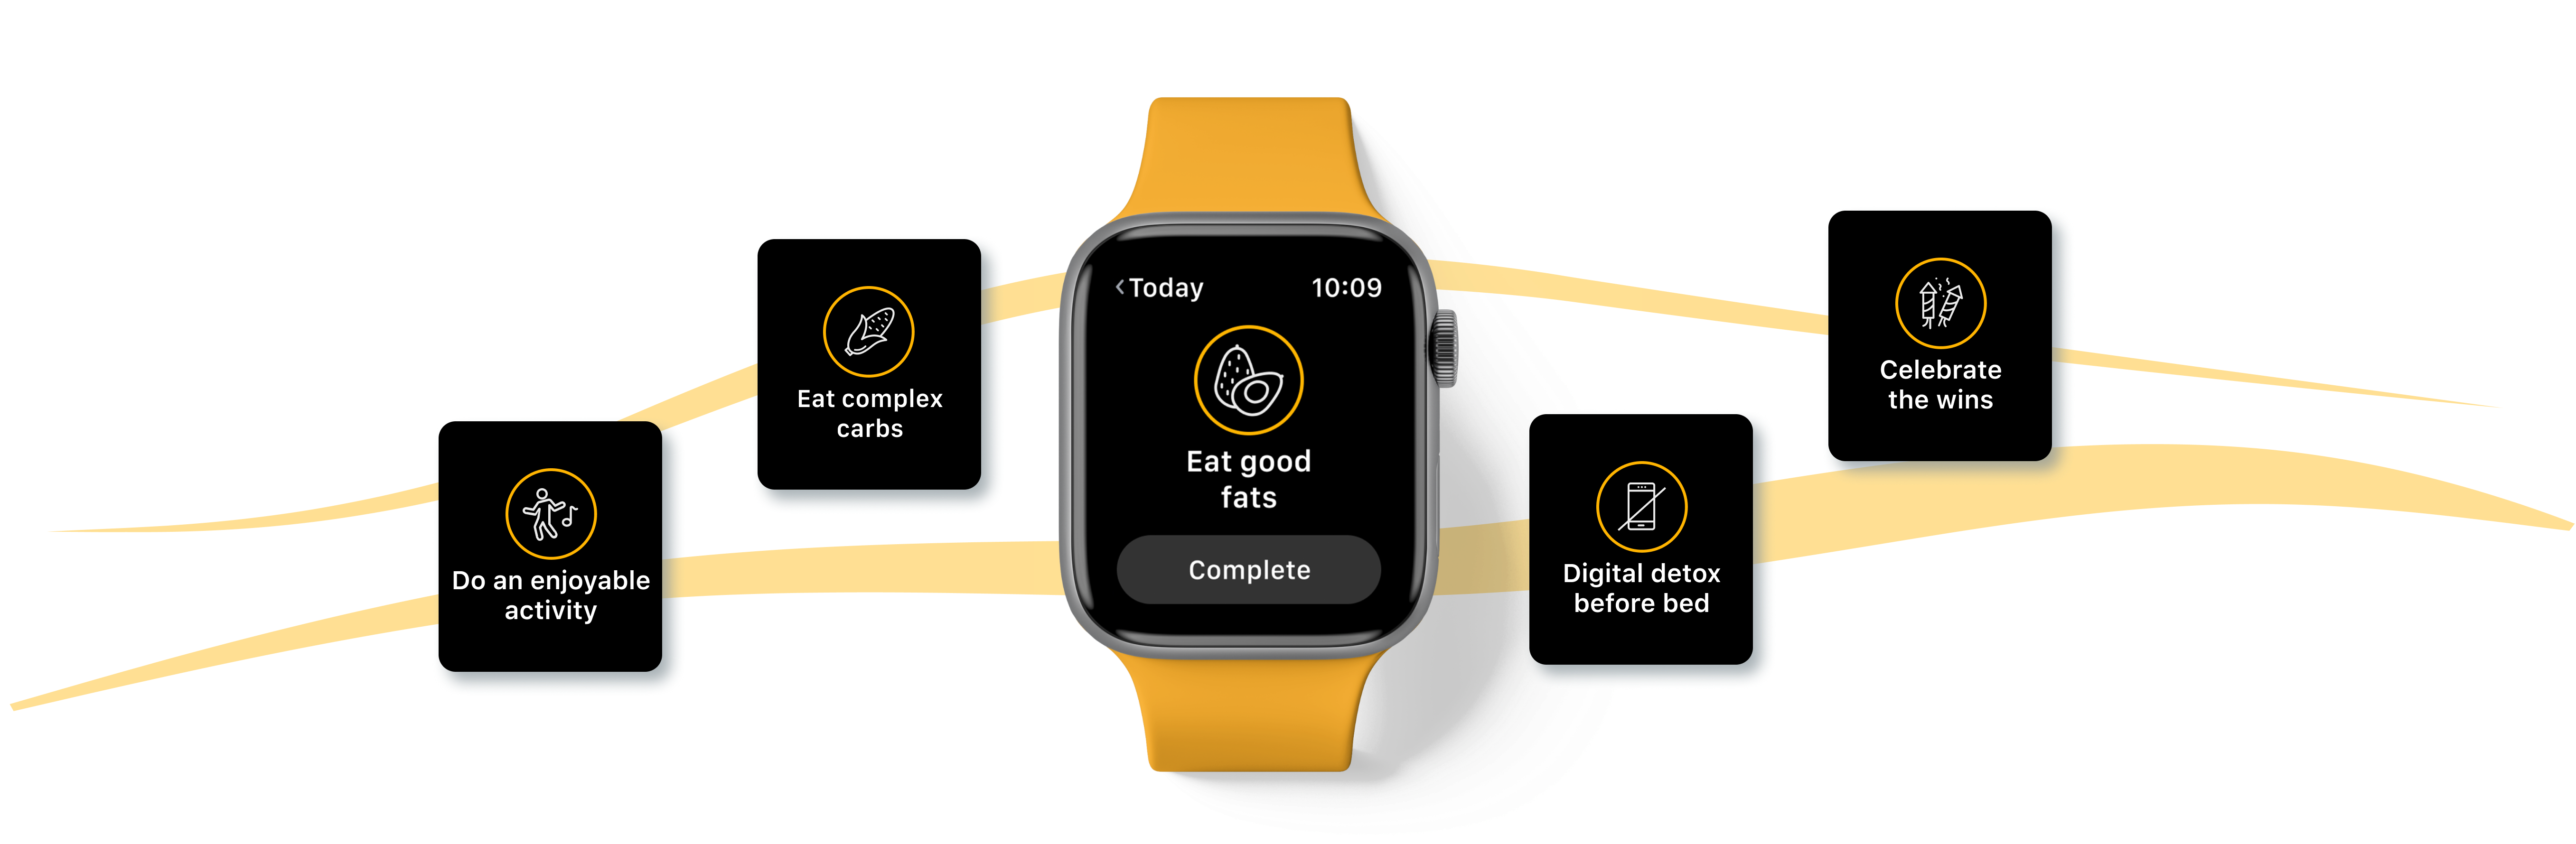 Clients can complete habits on the go with the new Apple Watch App powered by Trainerize